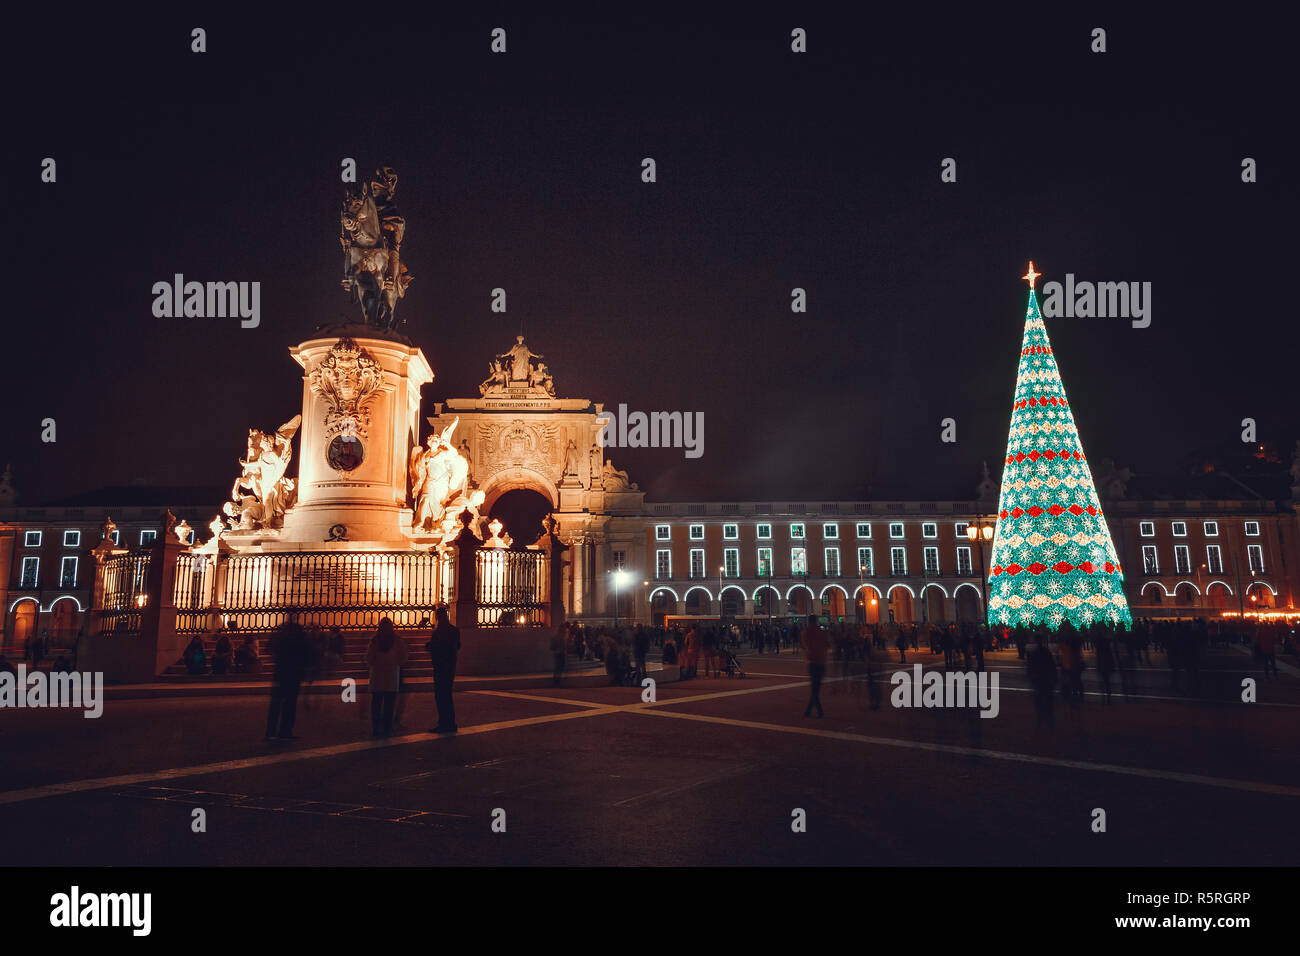 Christmas tree on Commerce square at night in Lisbon, Portugal Stock Photo